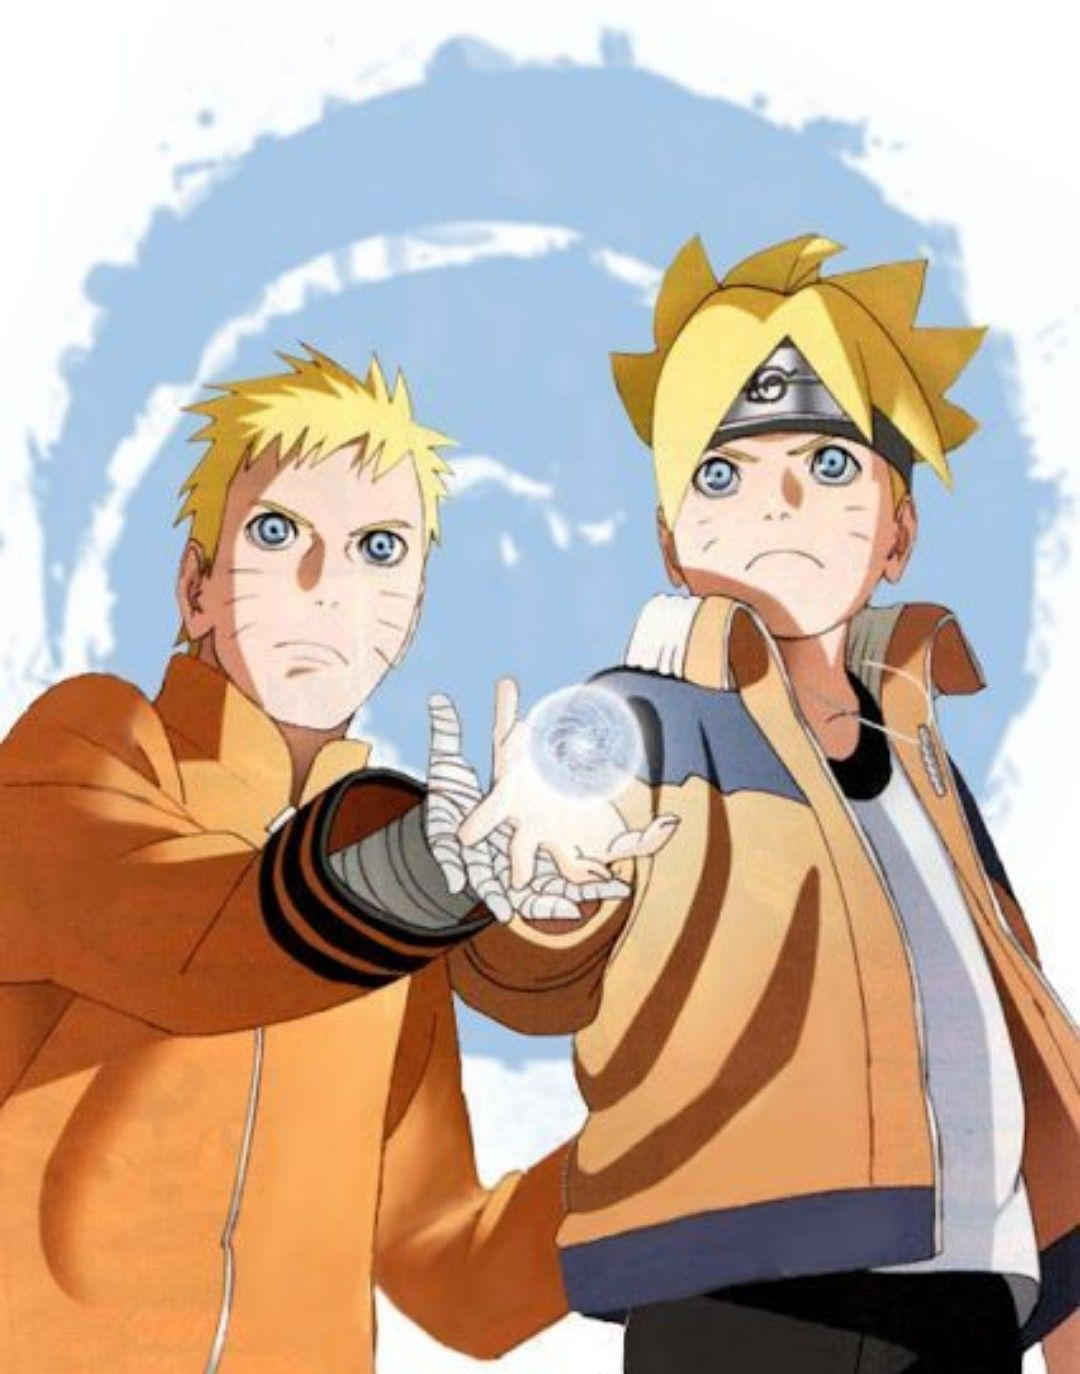 Pin By Makaporn On Naruto With Images Anime Anime Naruto